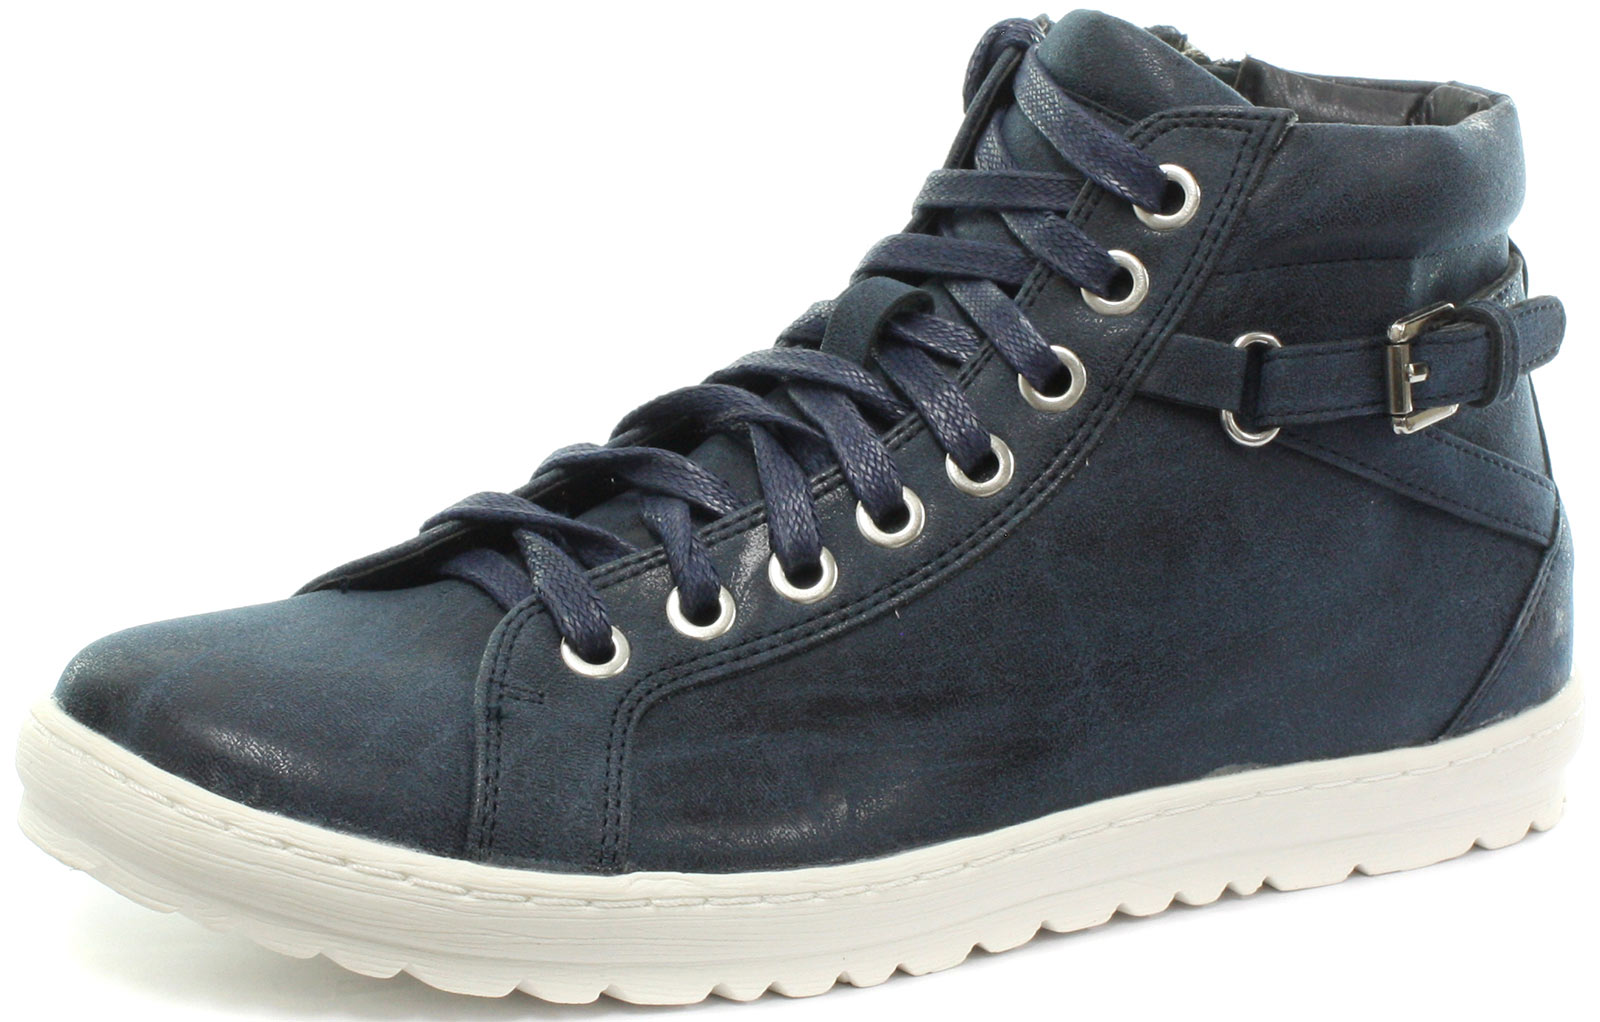 New Cipriata Octavia Navy Side Zip 8 Eye Womens Lace Up shoes ALL SIZES